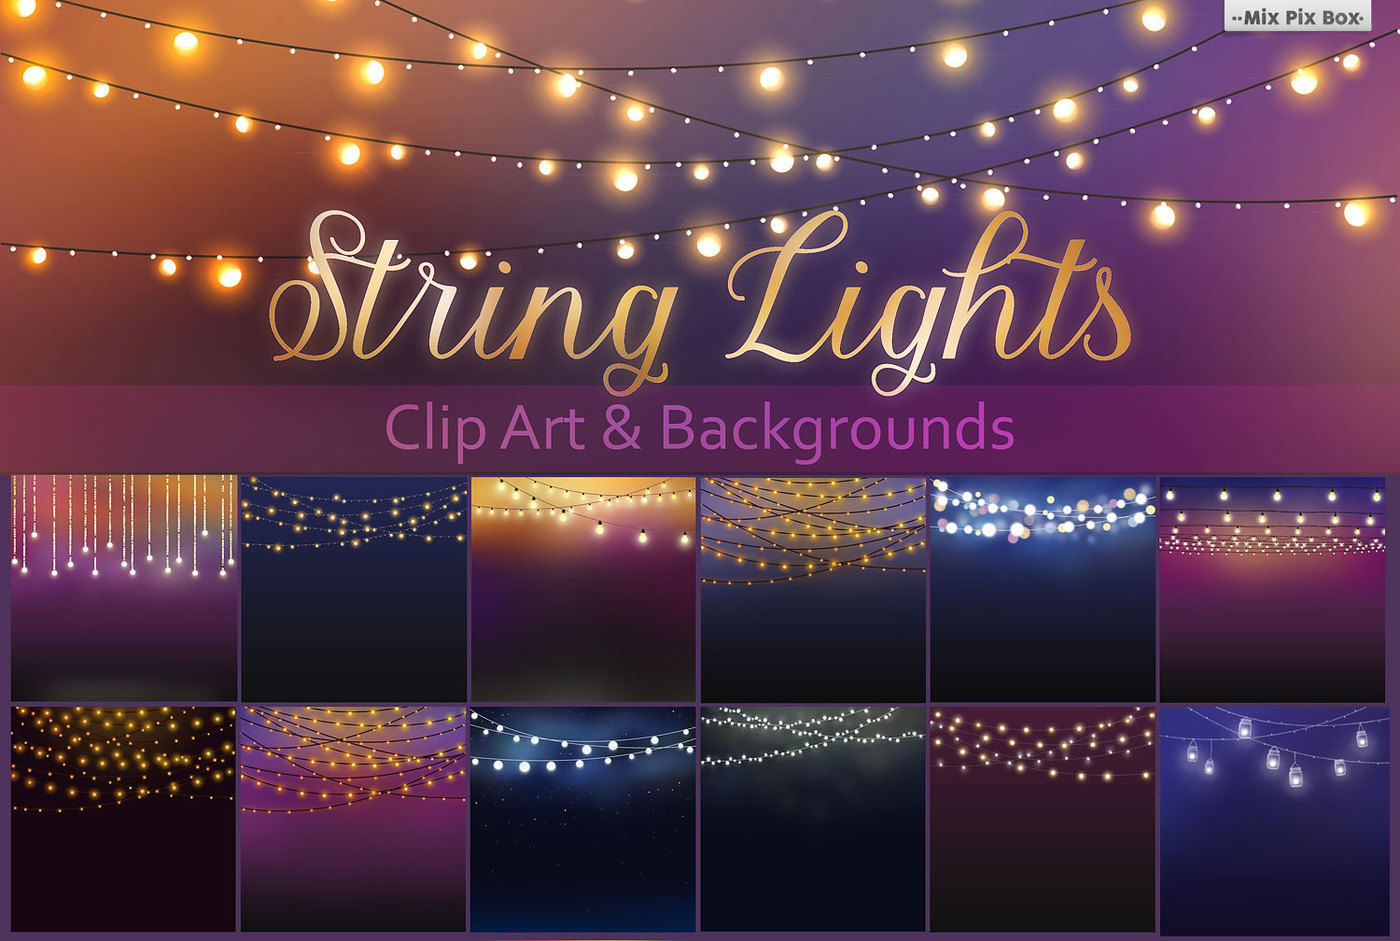 String Lights Clipart By Mixpixbox Thehungryjpeg Com